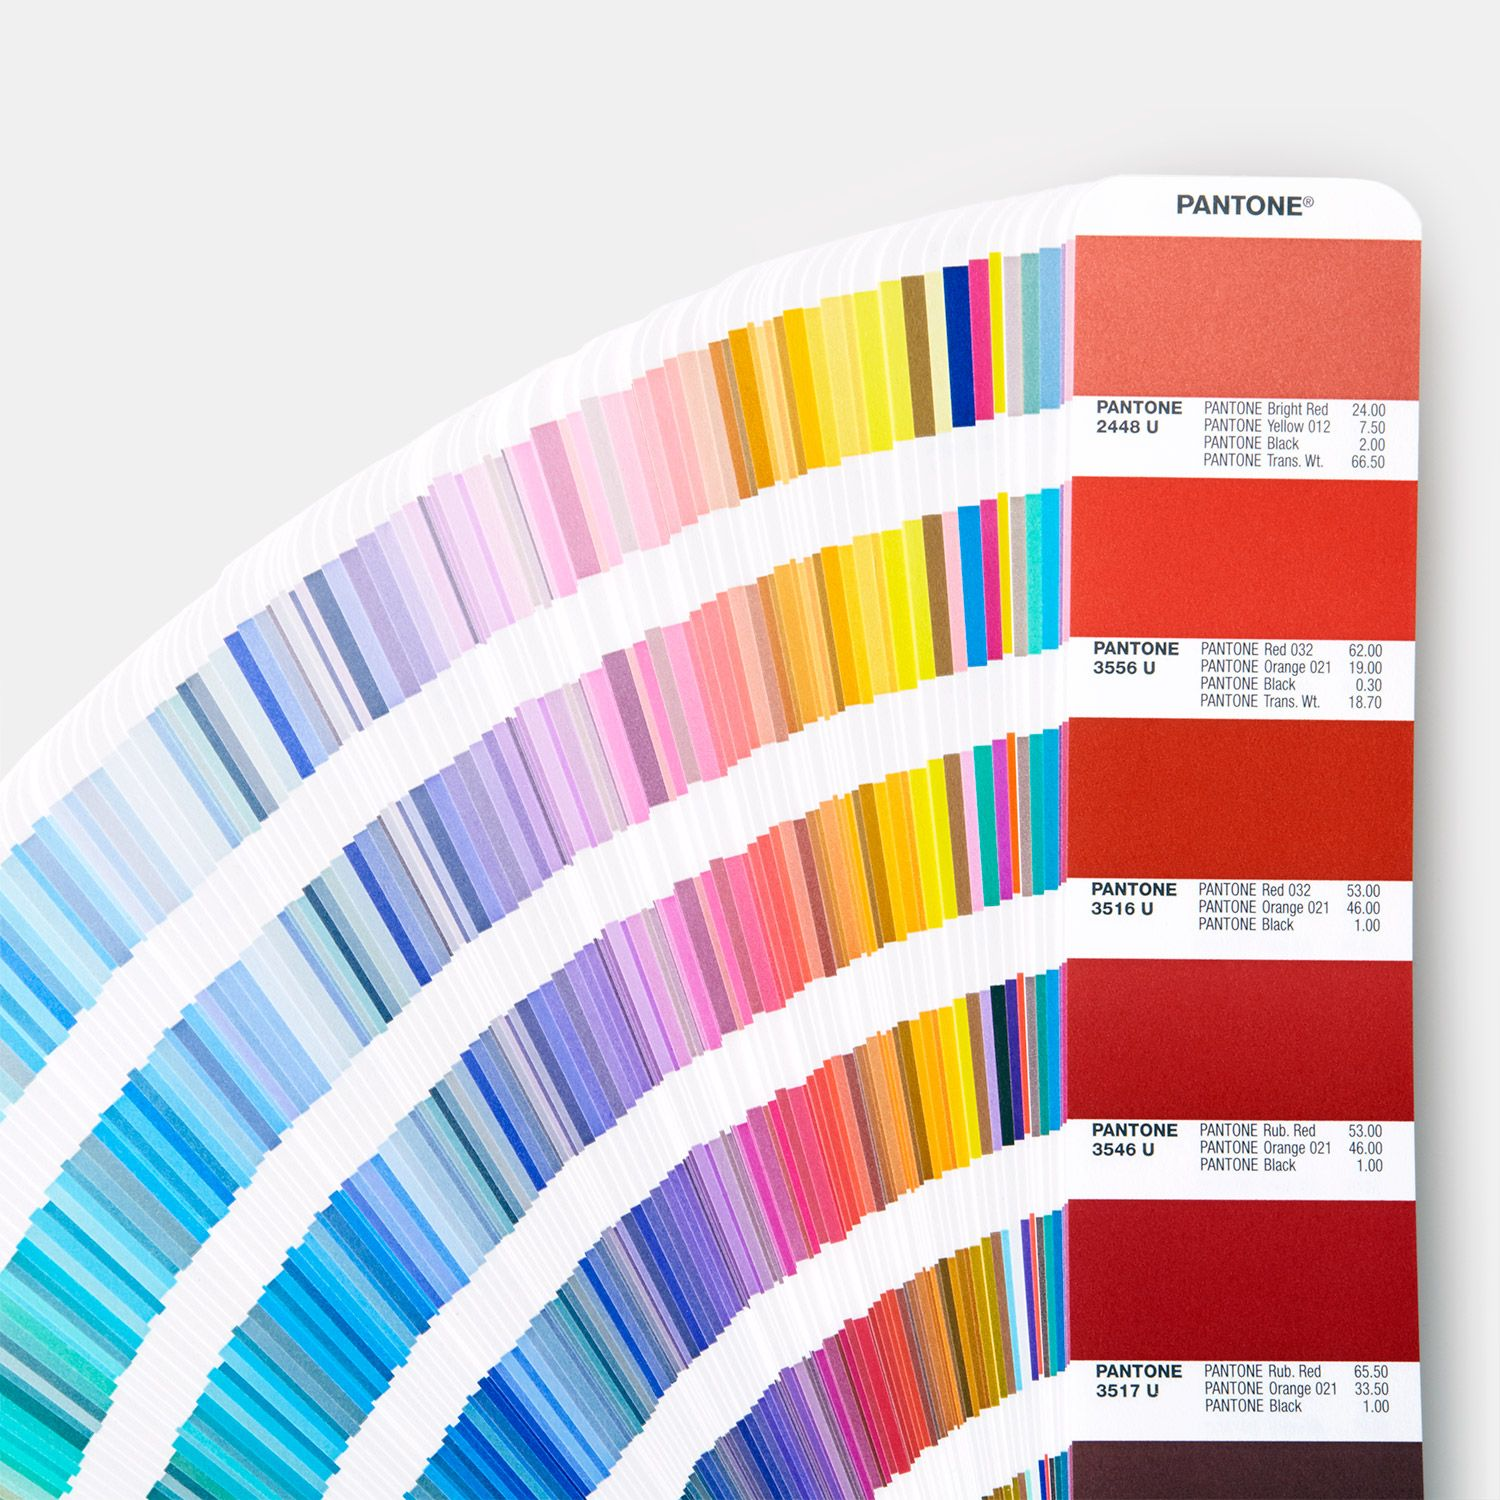 Formula Guide Coated Uncoated In 2020 Pantone Formula Guide Pantone Pantone To Ral